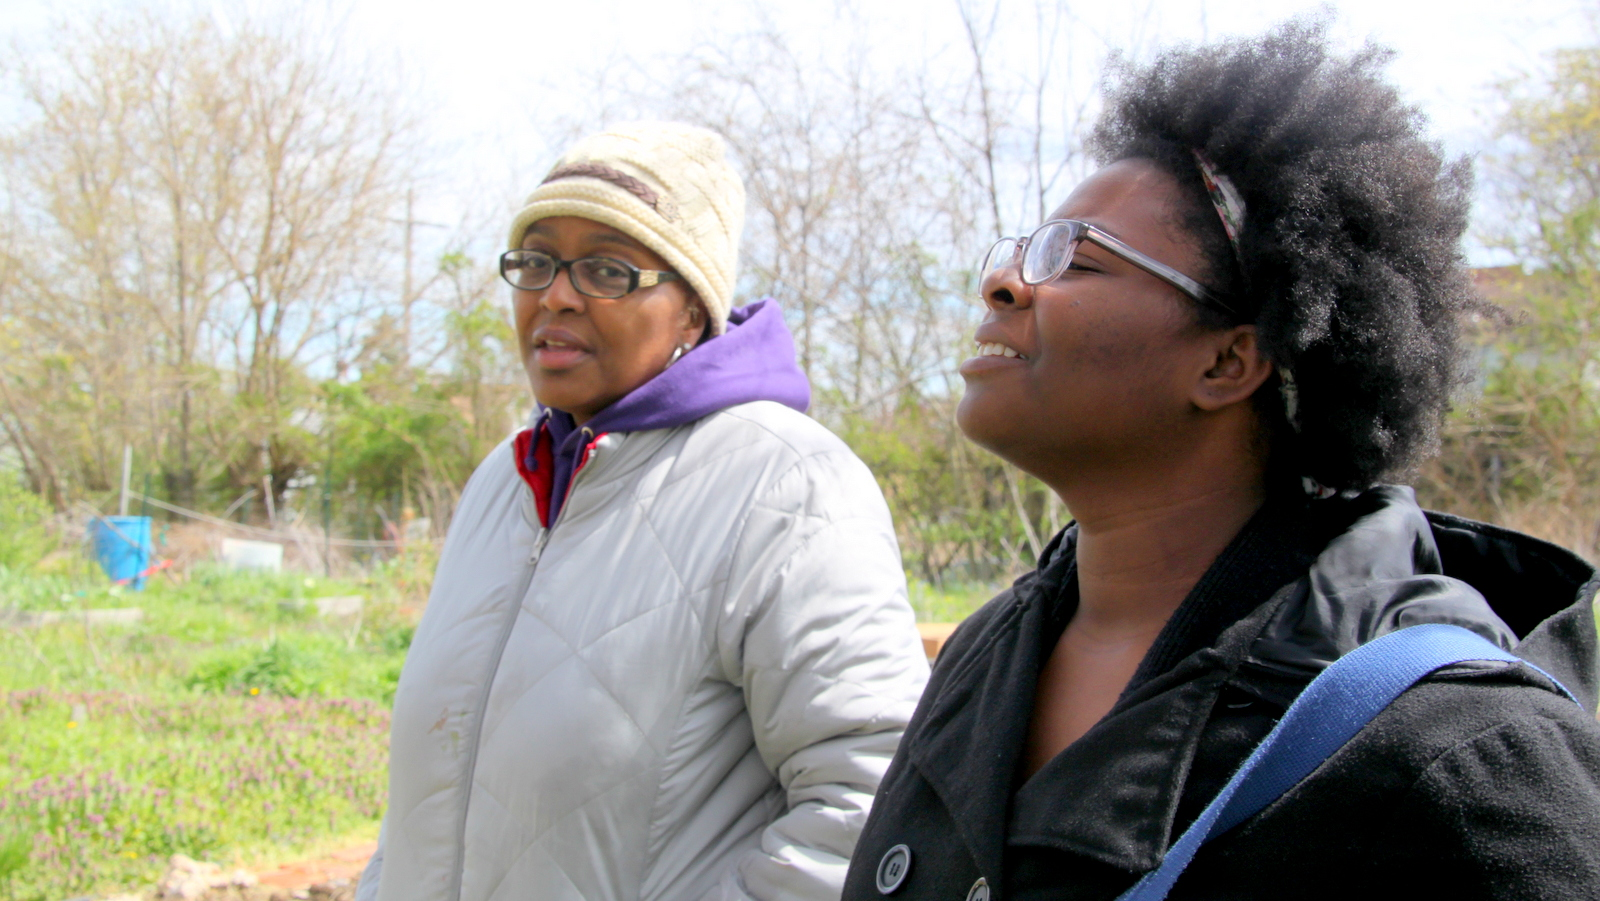 Filbert Street Community Garden manager Rodette Jones with activist Destiny Watford. (Fern Shen)